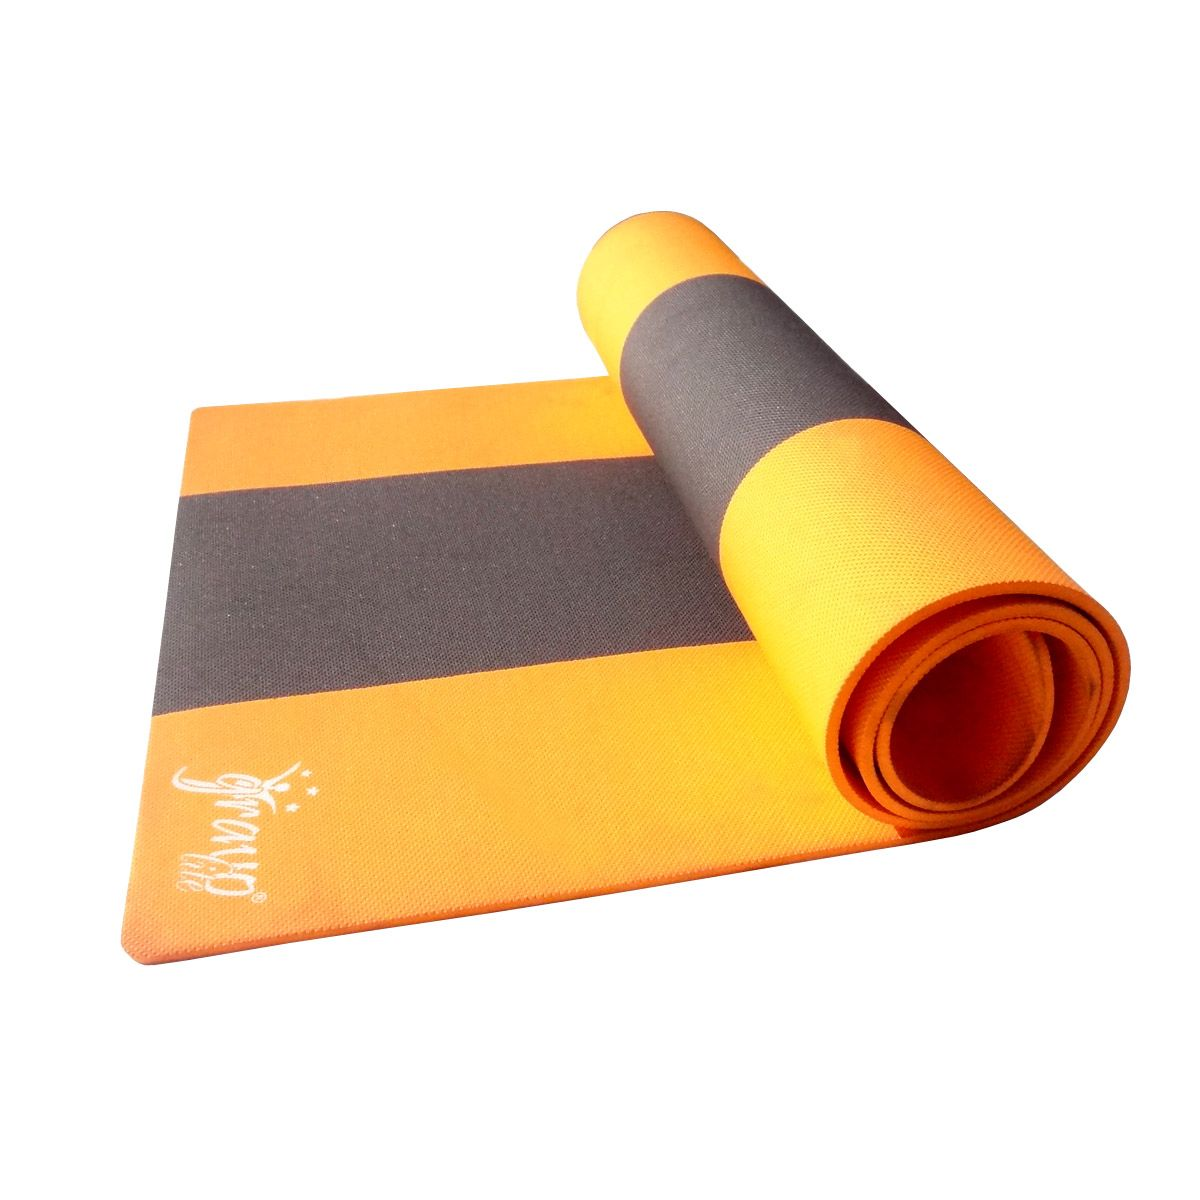 Buy Yoga Mats Online In Bangalore Contact With Us For Any Type Of Yoga Mats Other Sports Mats We Matsindia Manufacture Buy Yoga Mat Sport Mat Mat Online